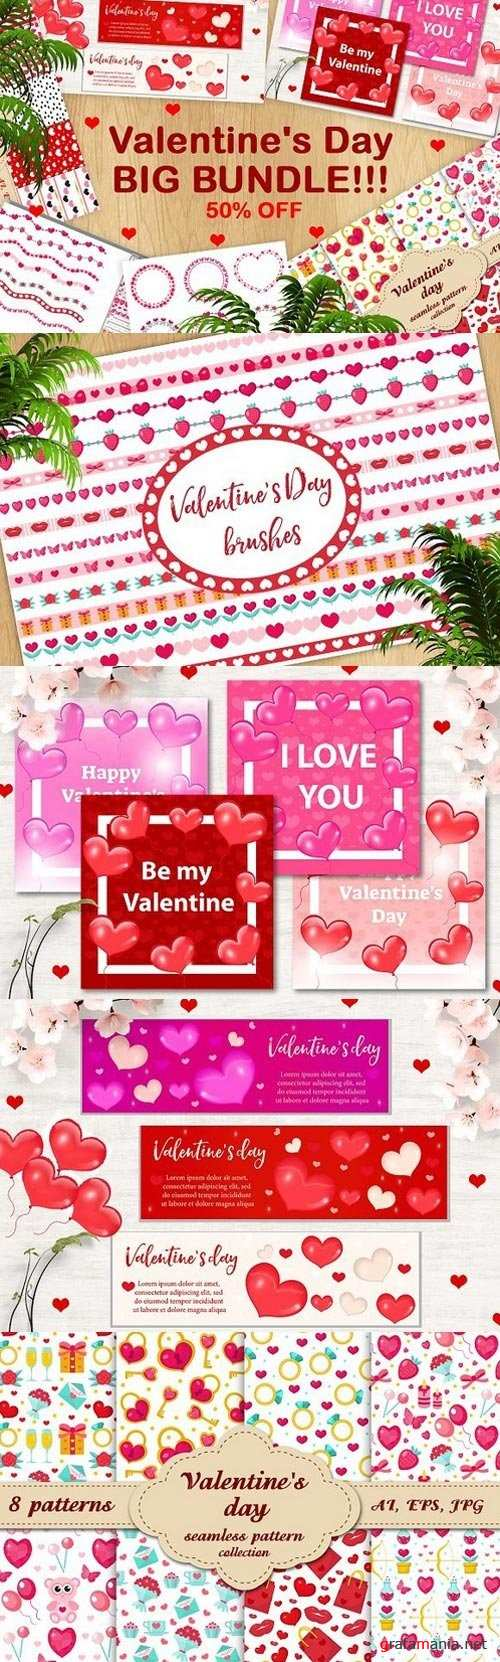 Valentine's Day BIG BUNDLE!!! - 1225574